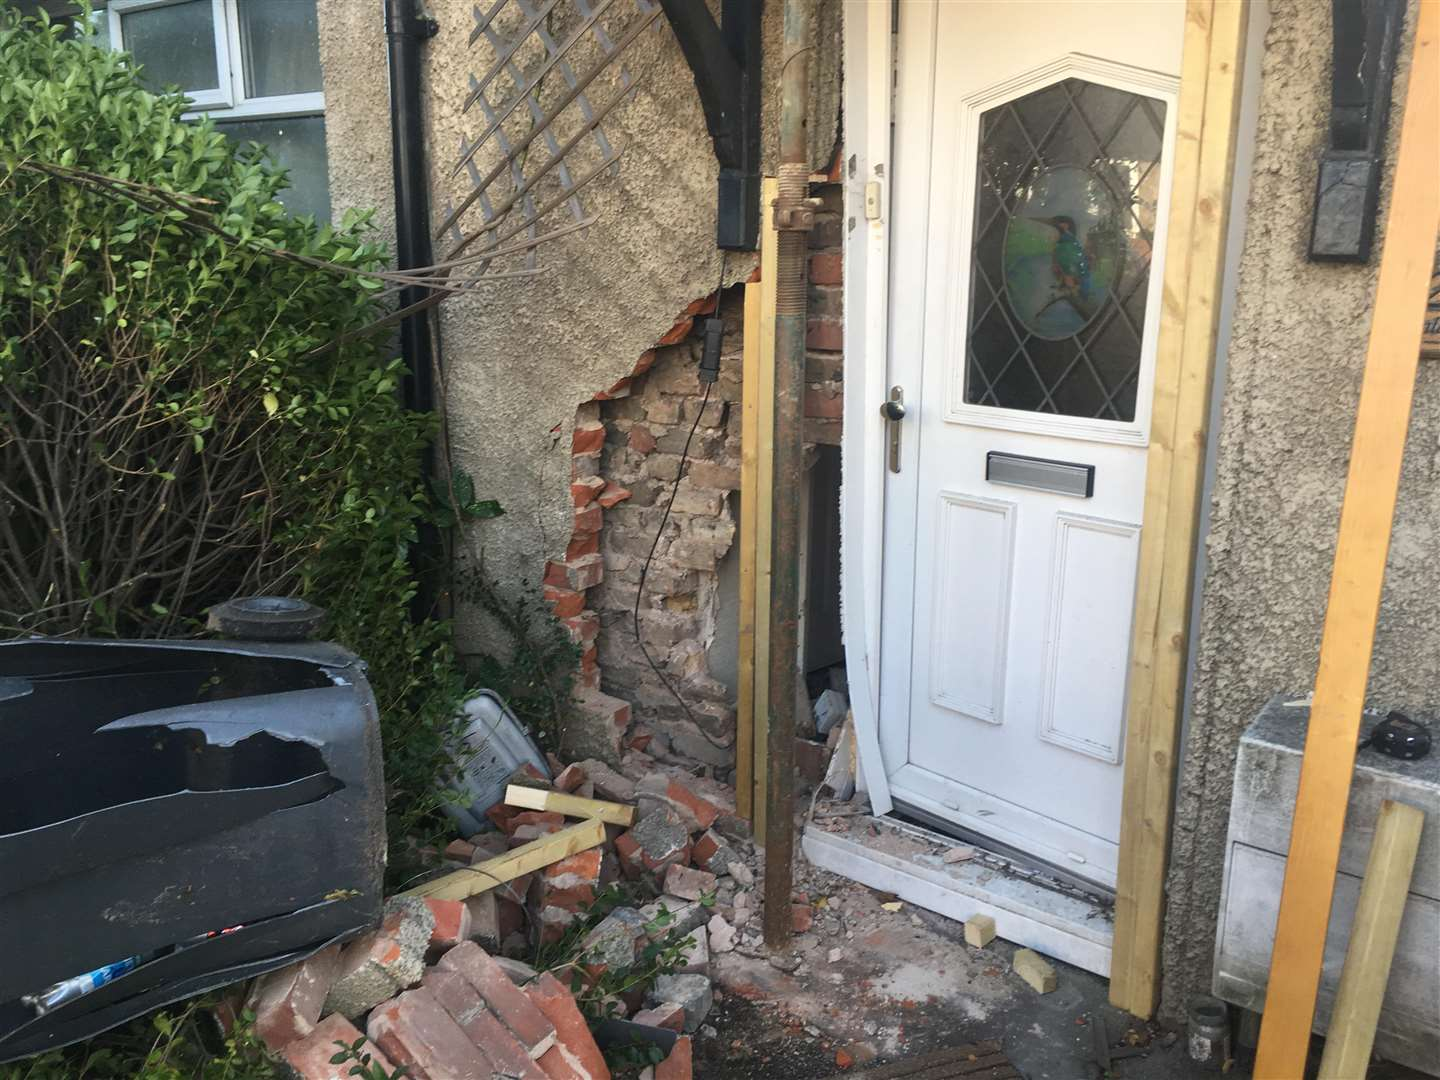 The damage caused to the house in Sturry Road. (4758687)